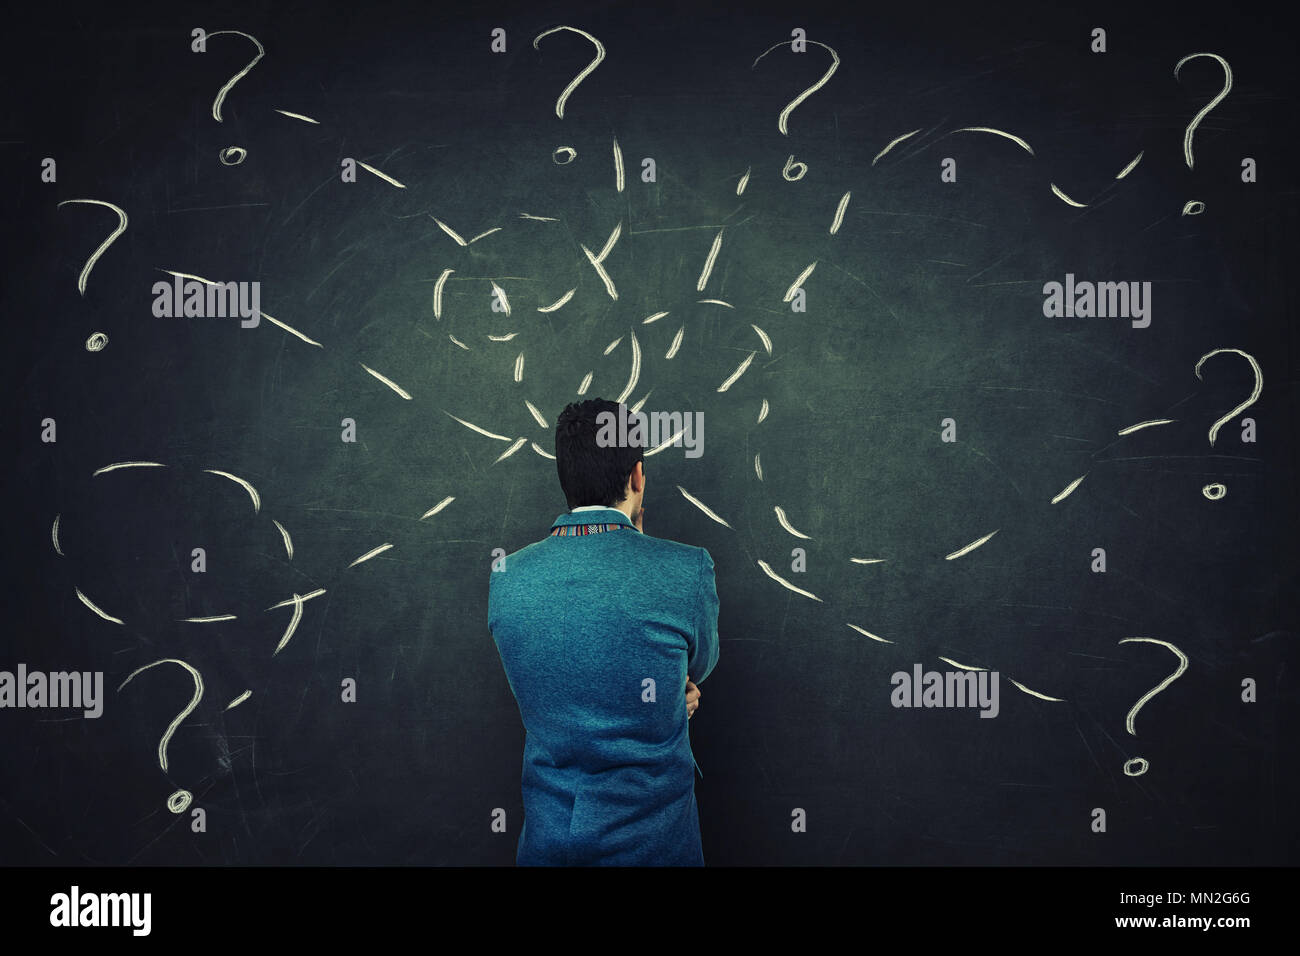 Rear view of a puzzled businessman in front of a blackboard try to solve different tasks, having questions. - Stock Image